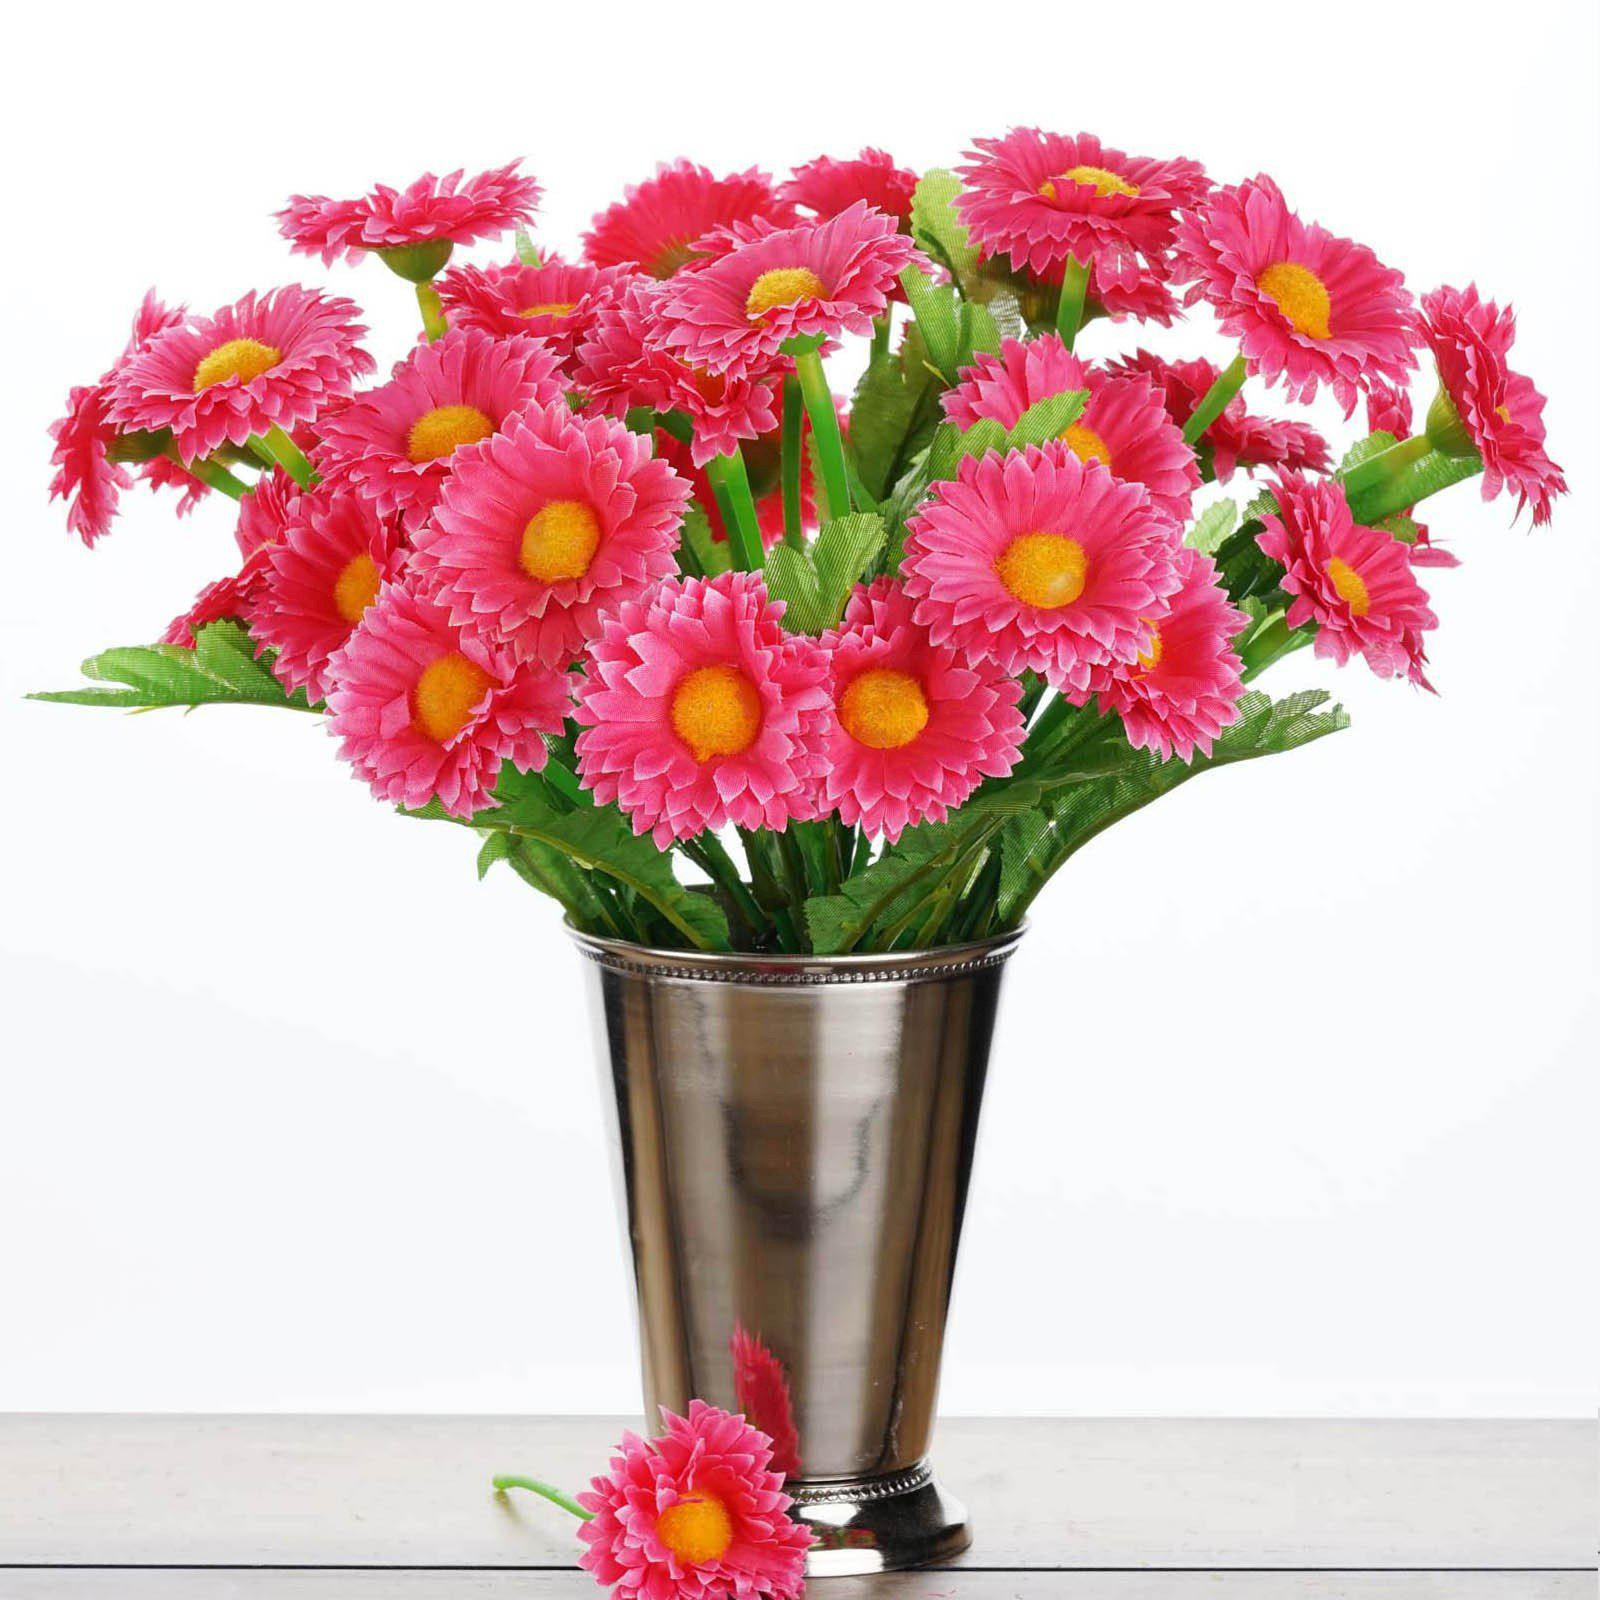 108 wholesale artificial silk daisy flowers wedding vase centerpiece 108 wholesale artificial silk daisy flowers wedding vase centerpiece decor fushia izmirmasajfo